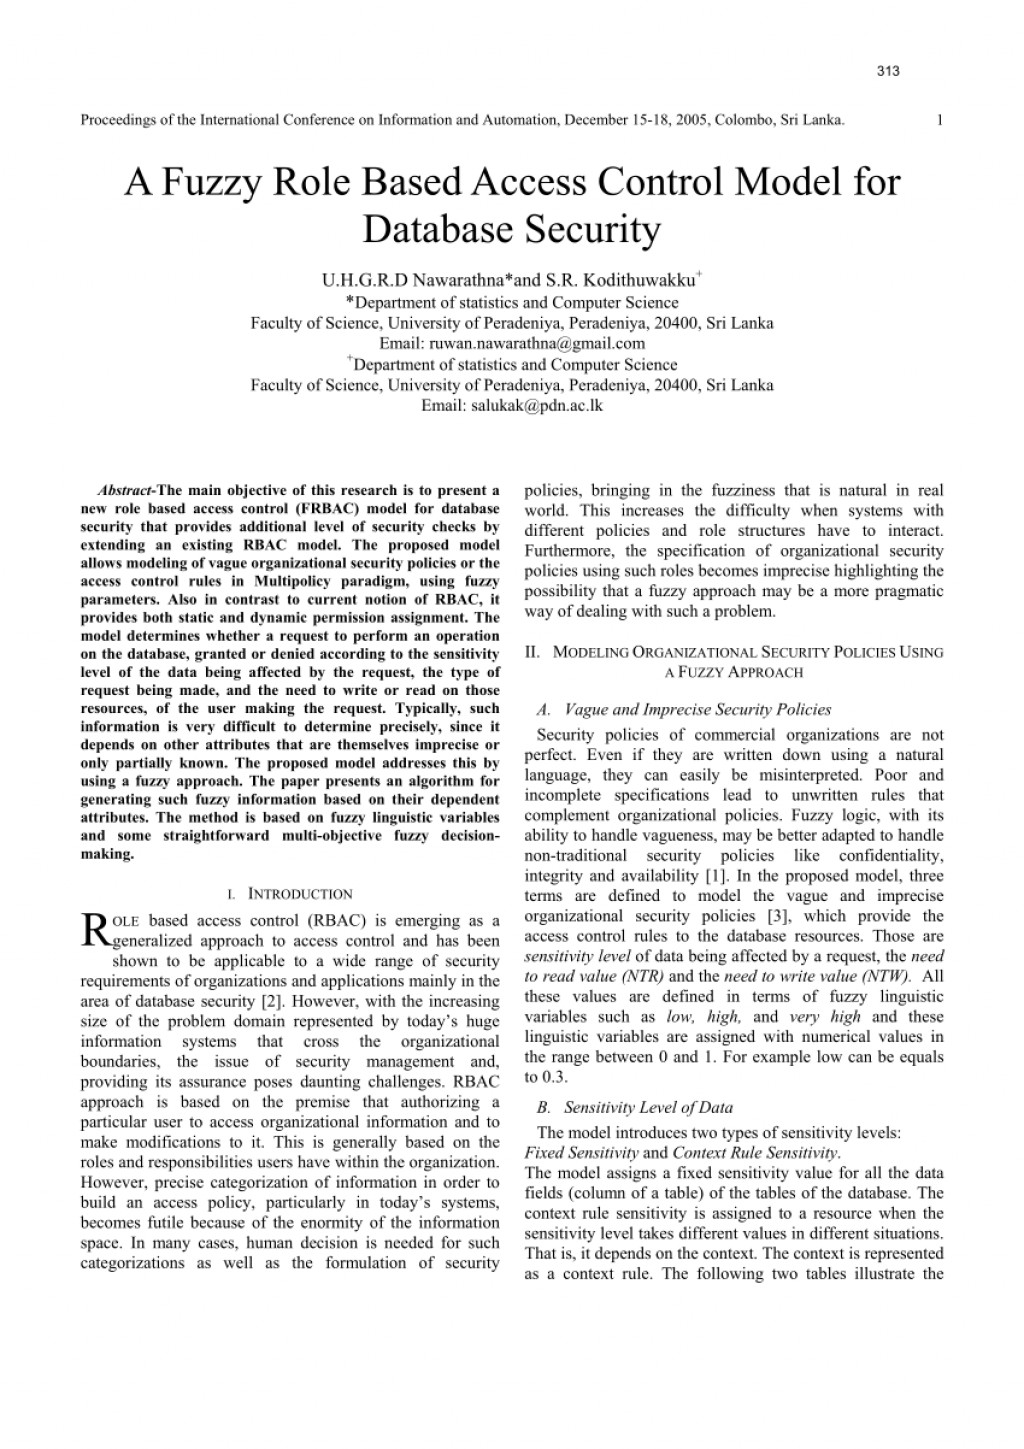 007 Database Security Research Paper Abstract Fascinating Large